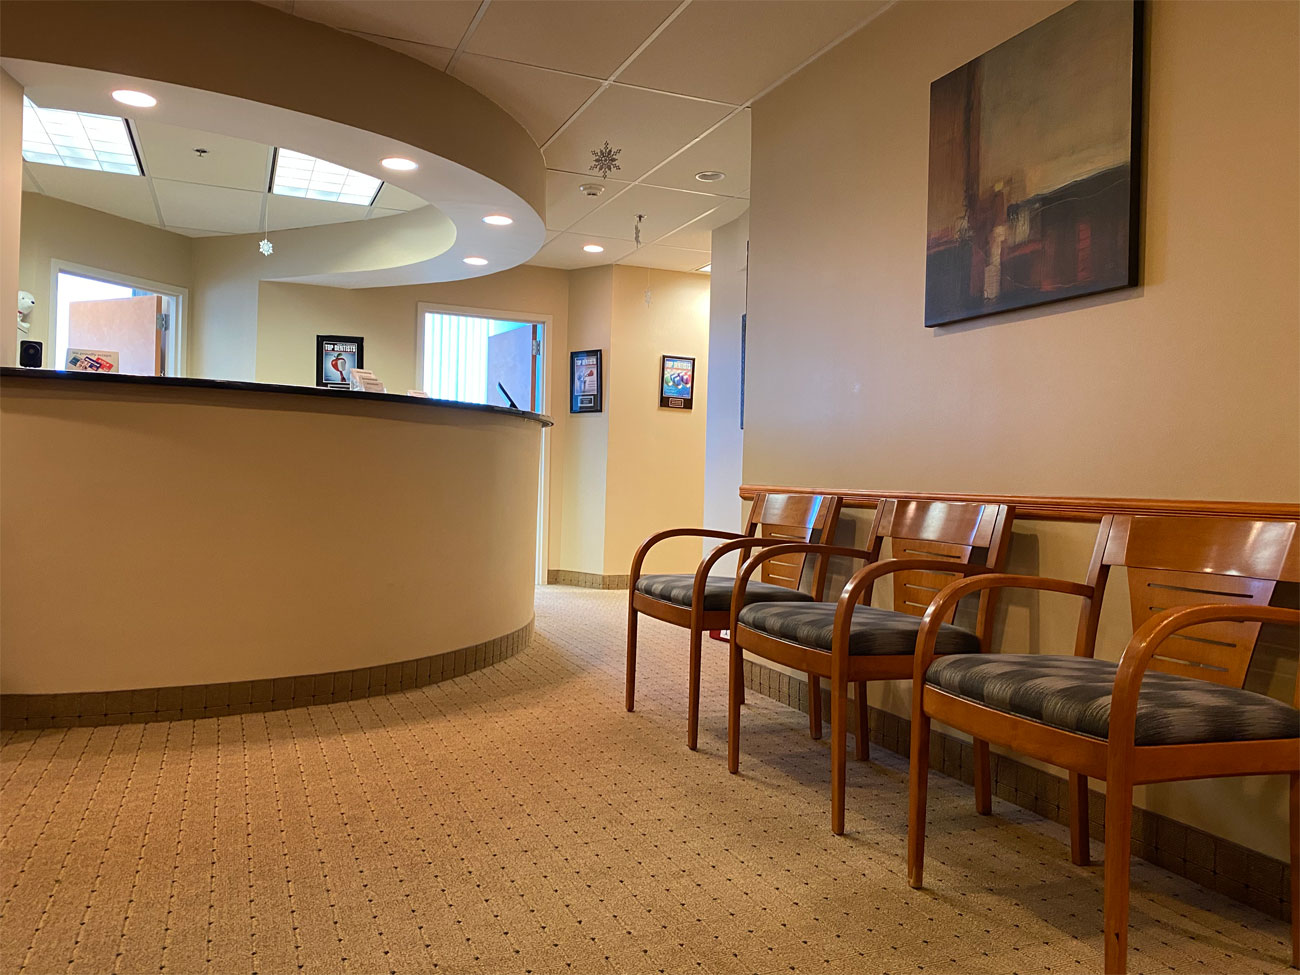 Dental Office Tour Photo #1 - Cranbury, NJ